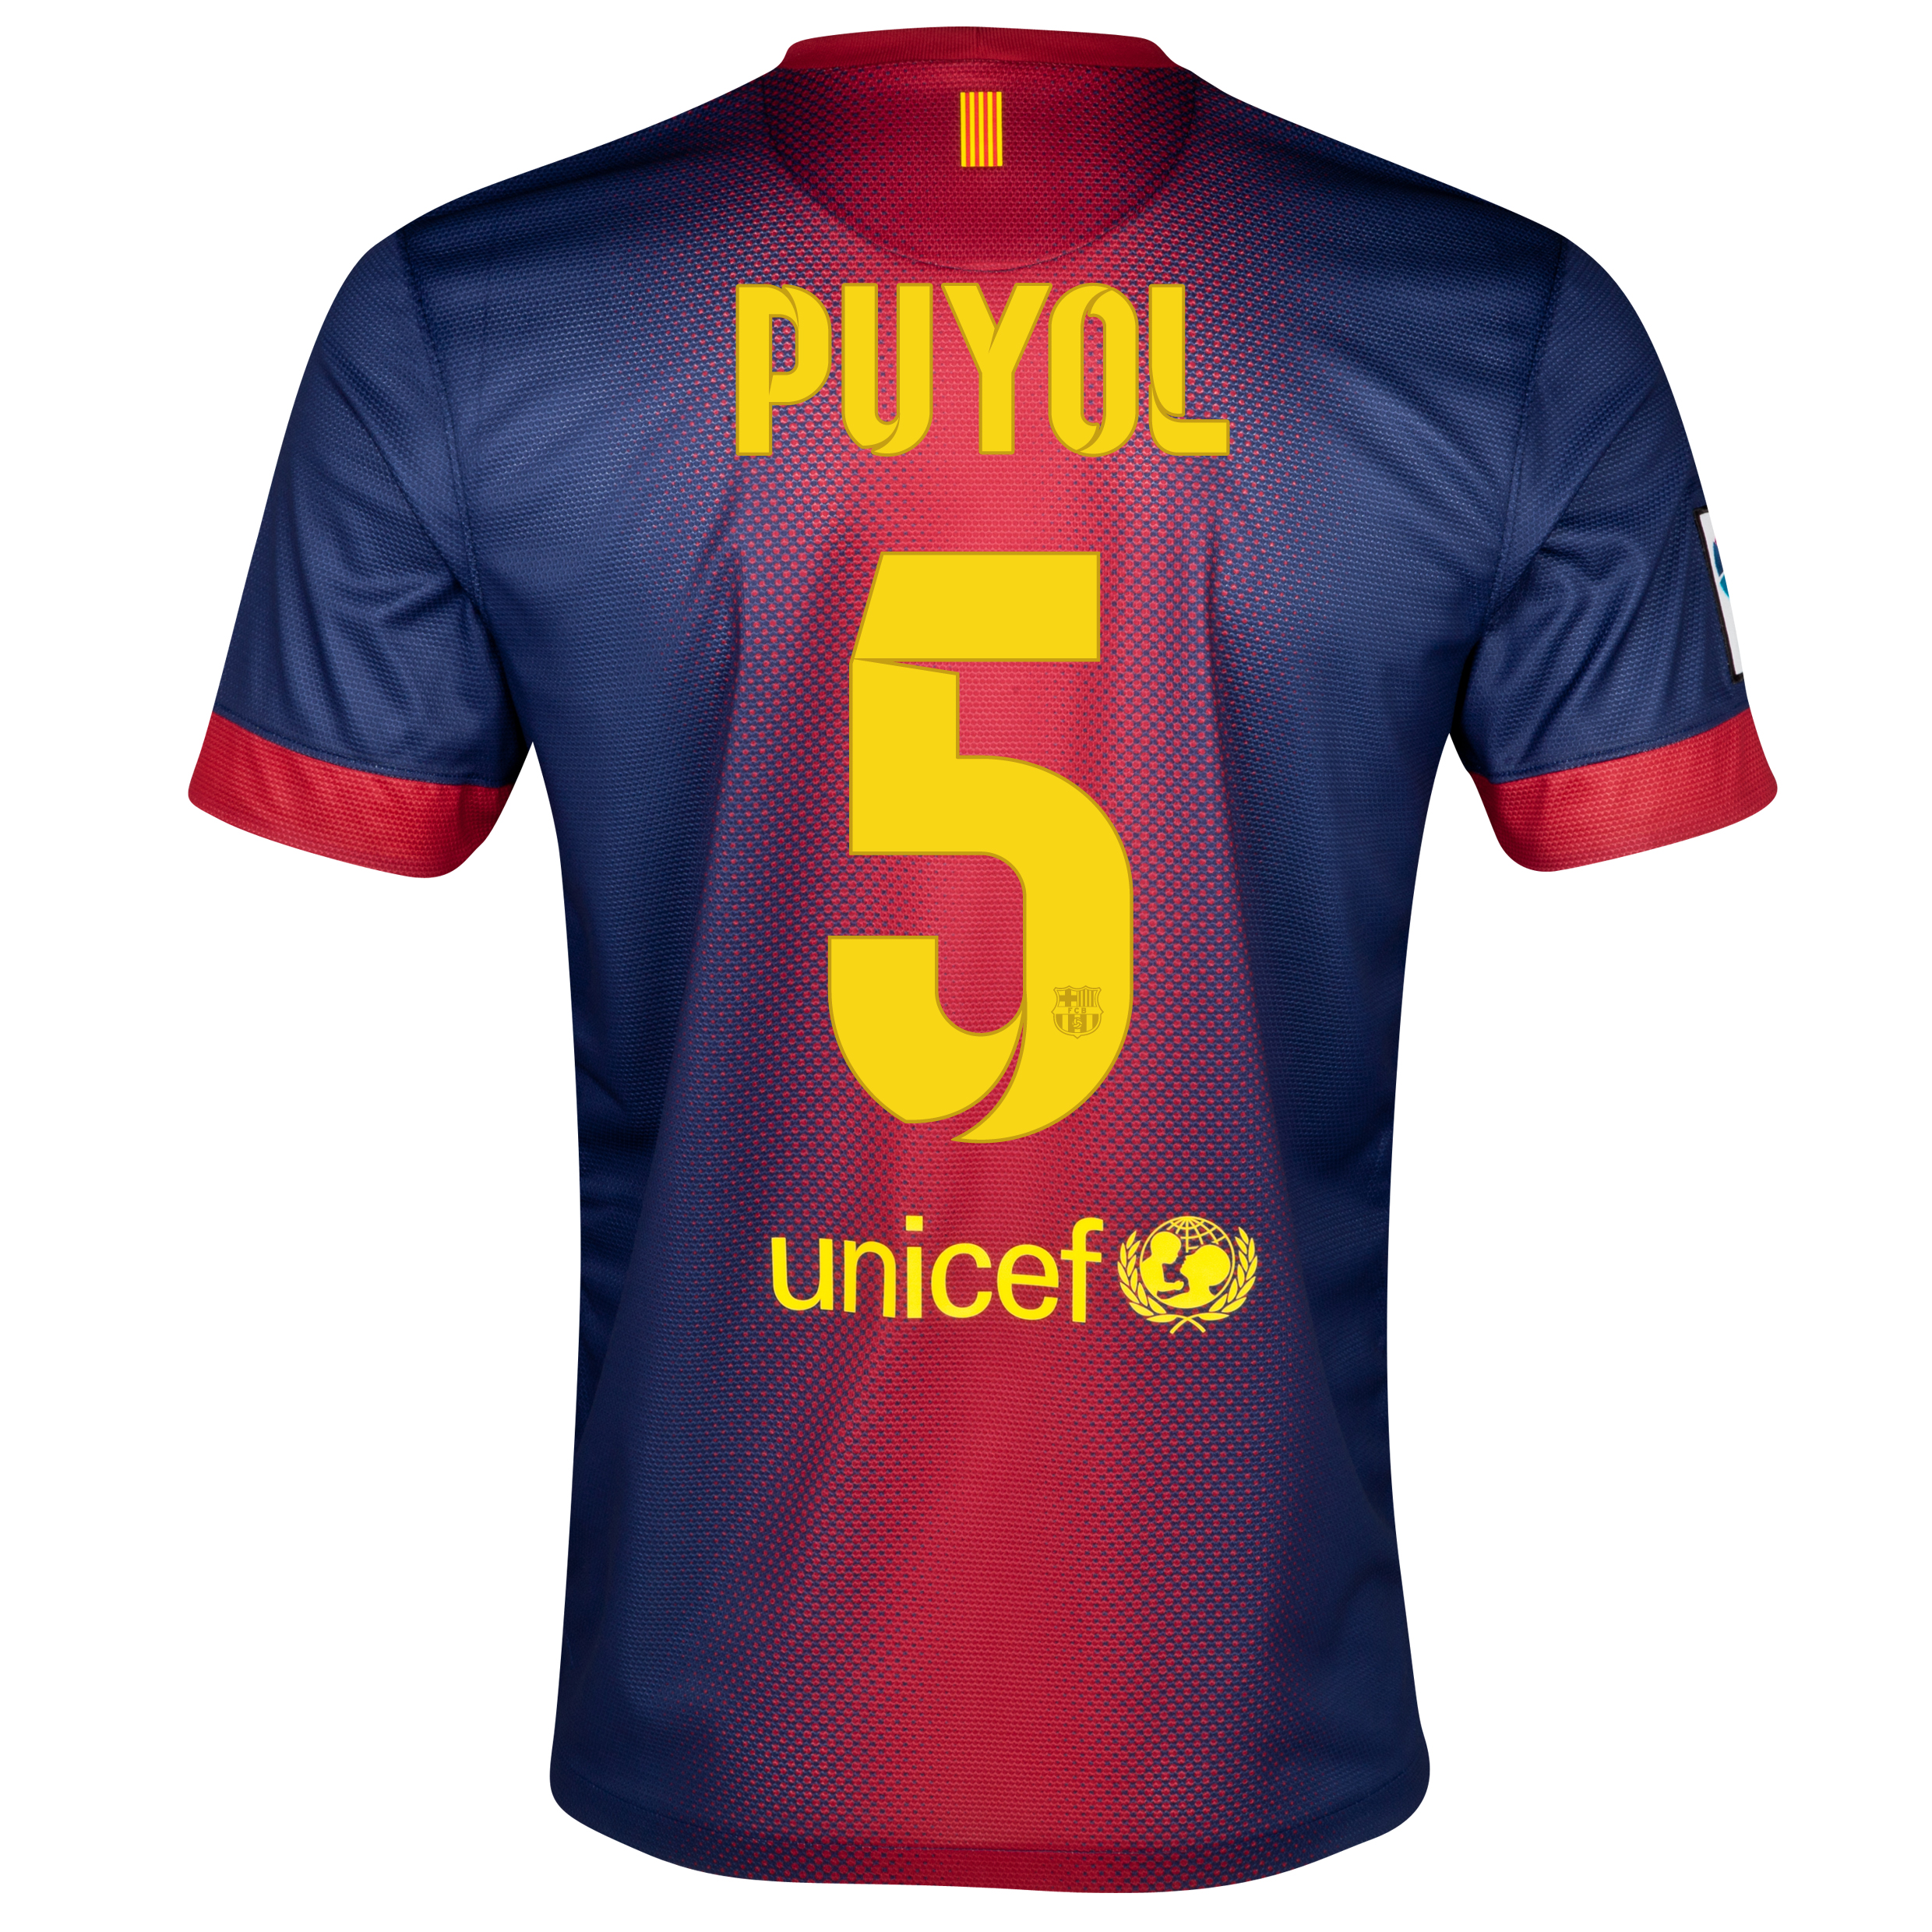 Barcelona Home Shirt 2012/13 - Youths with Puyol 5 printing